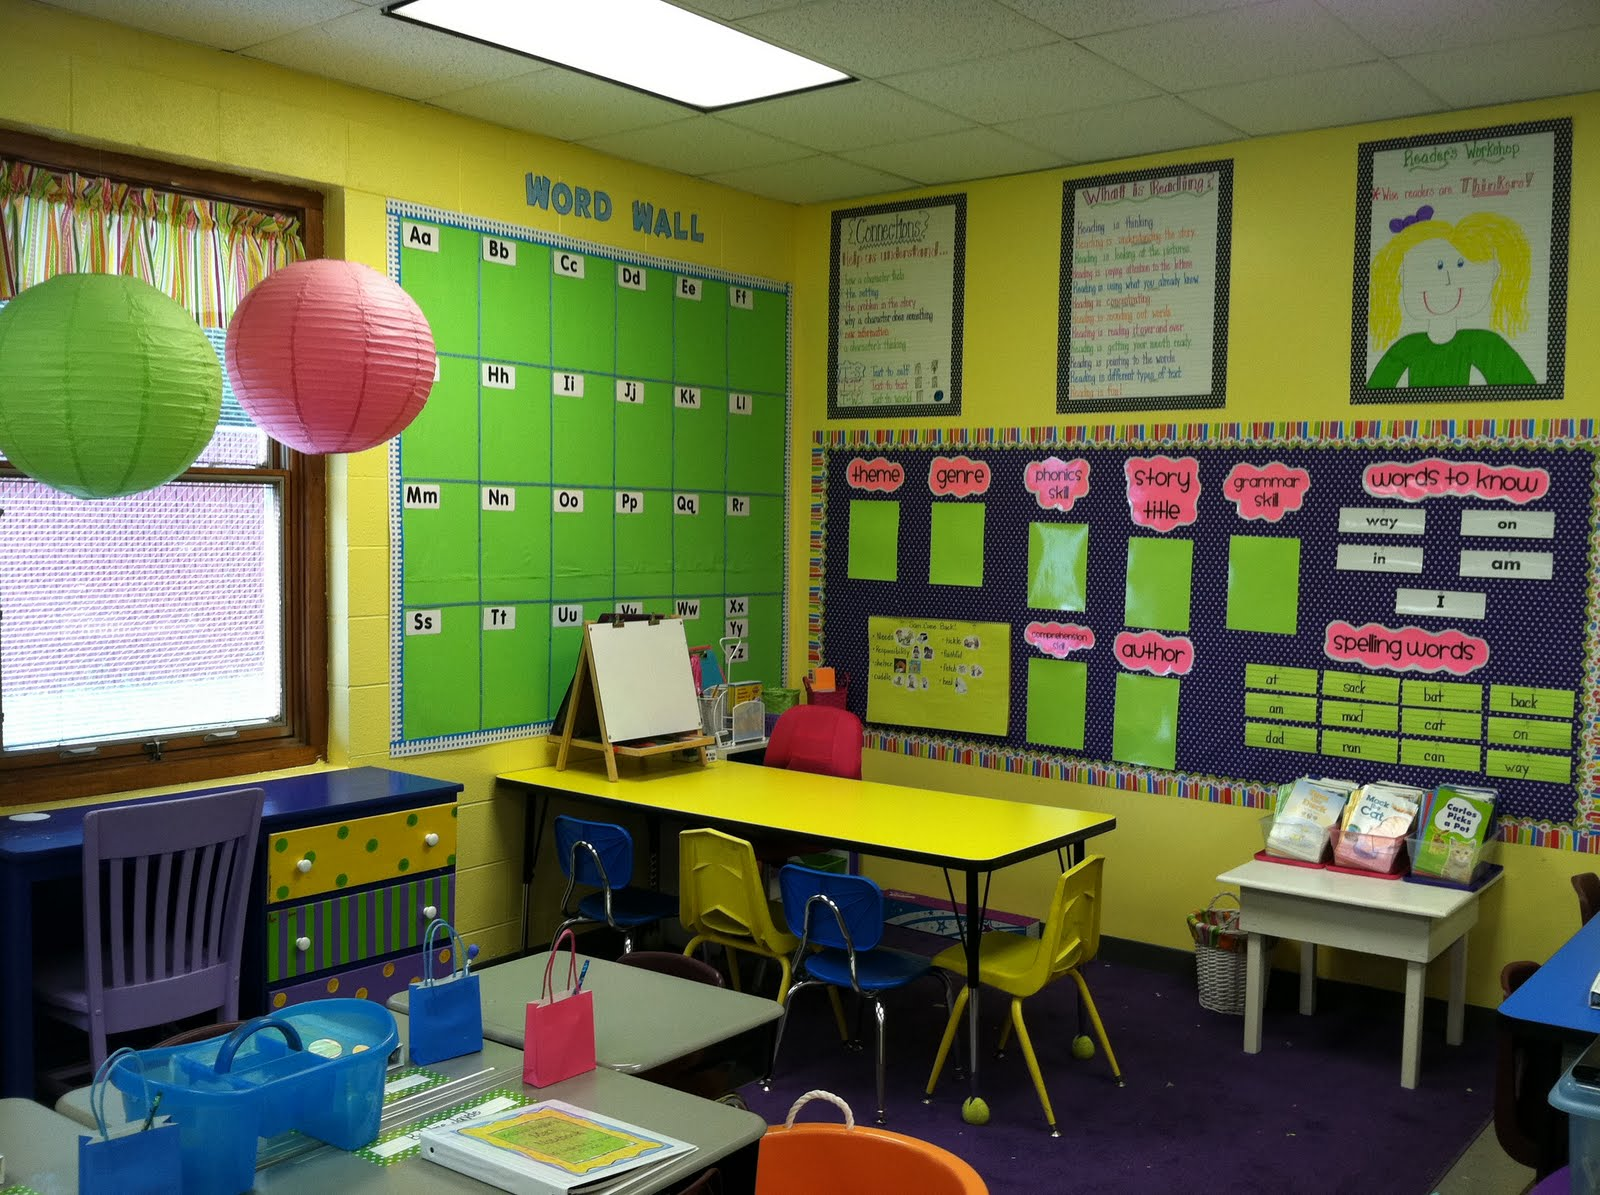 Classroom Decoration Ideas For Grade 1 ~ Life in first grade classroom decorating day ten